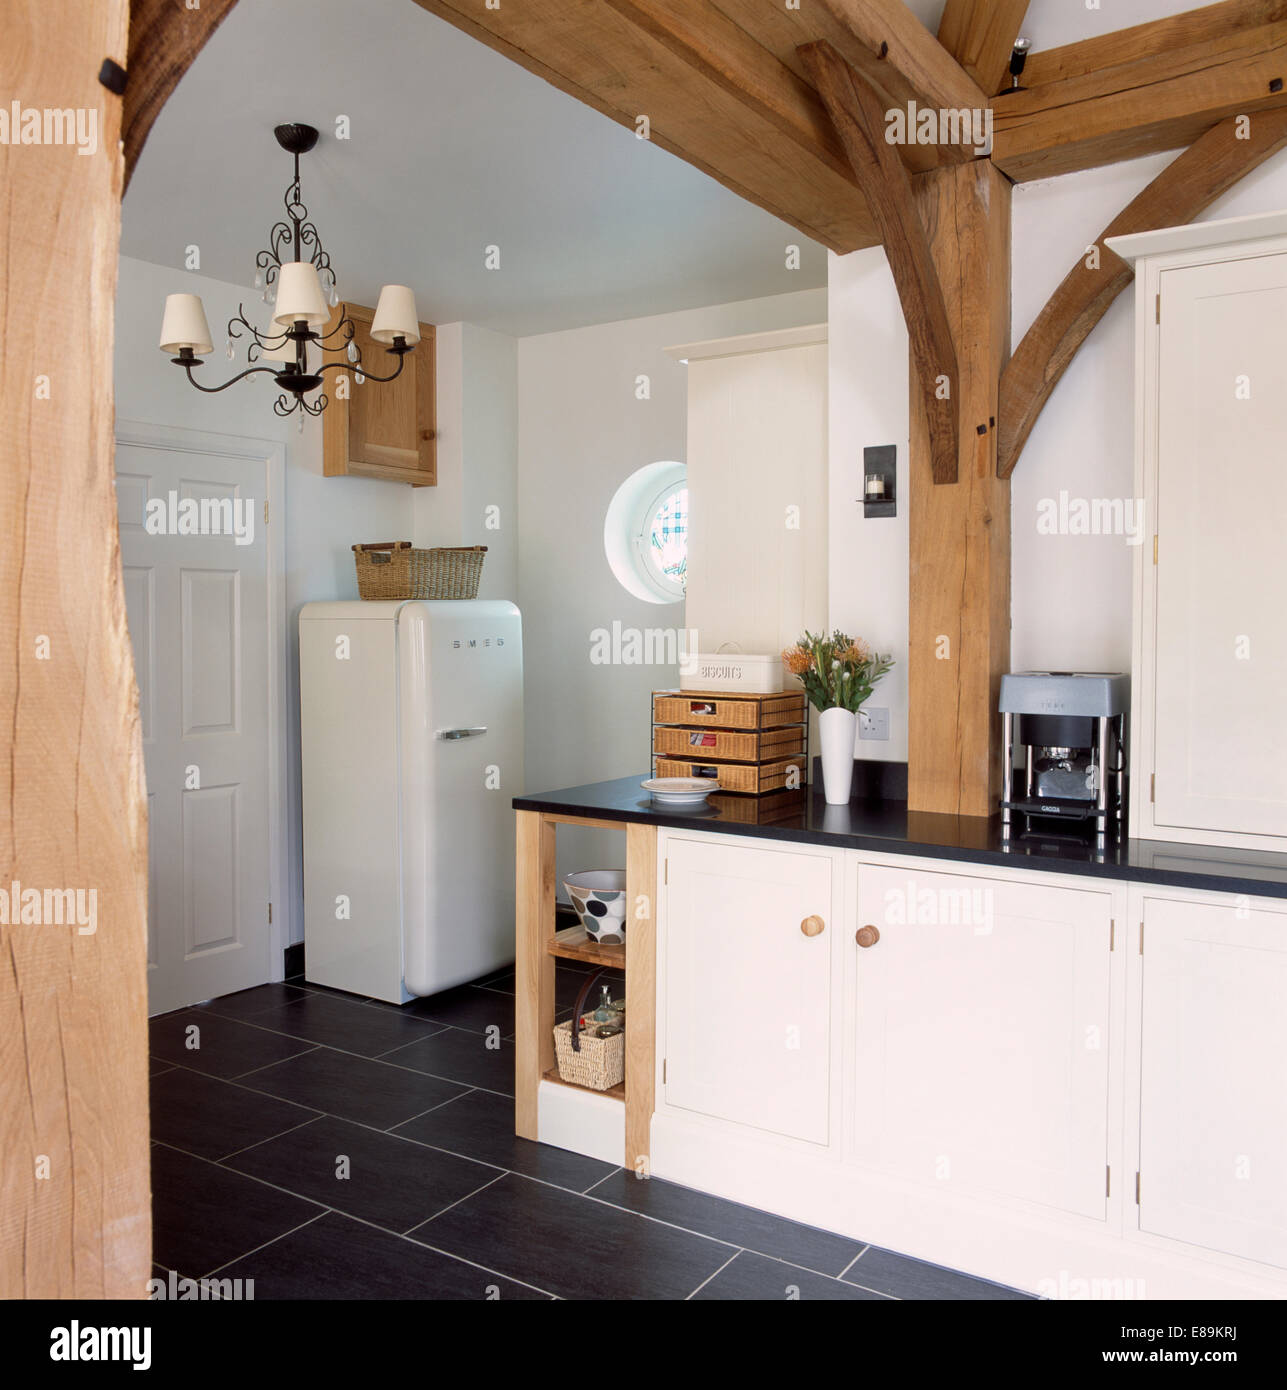 Large Wooden Beams In Barn Conversion Kitchen With Smeg Fridge And Slate  Flooring